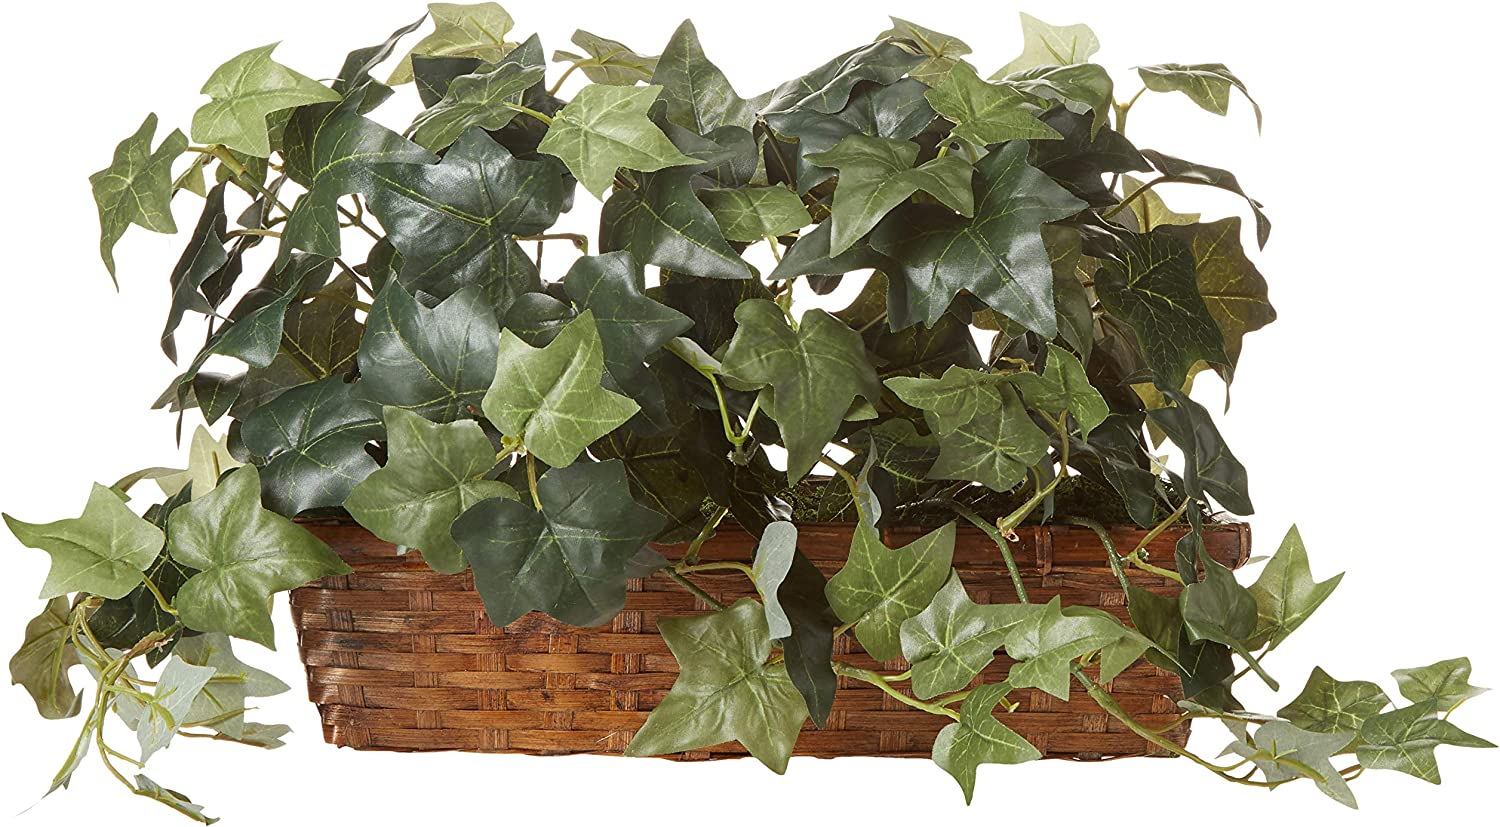 Nearly Natural 12.5in. Puff Ivy with Ledge Basket Silk Plants, Green,20.5'' x 6'' x 12''